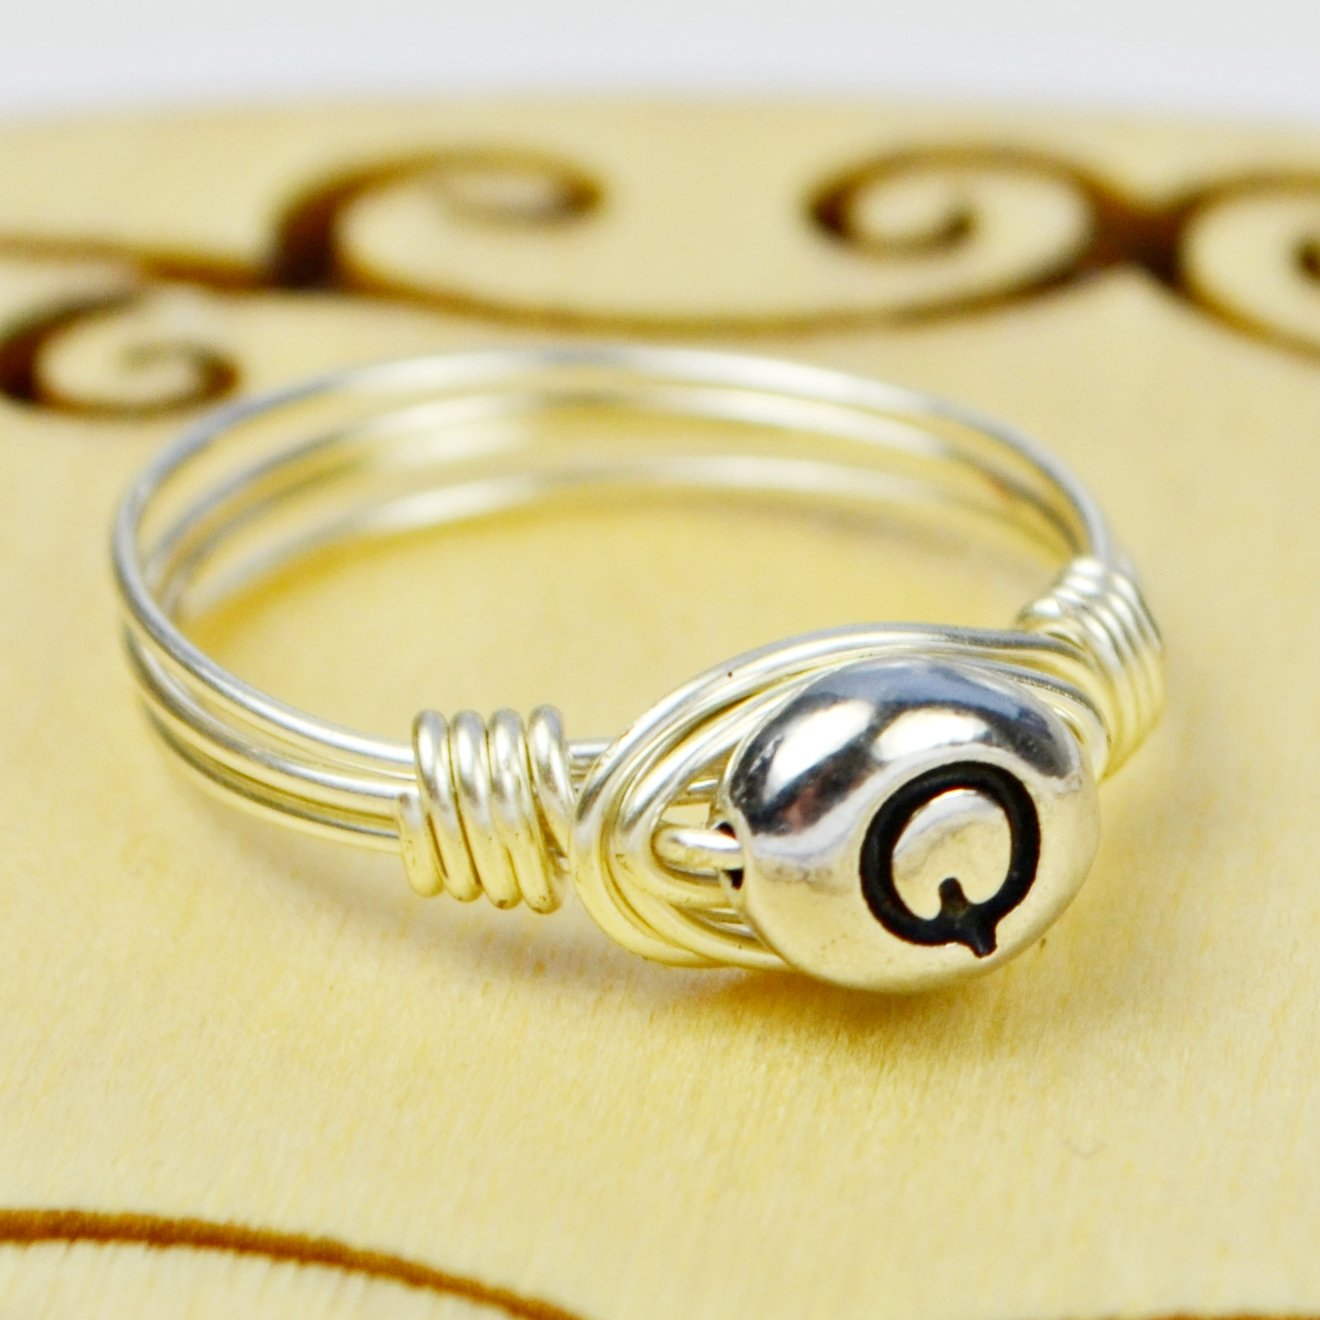 .925 Sterling Silver Letter Q Bead